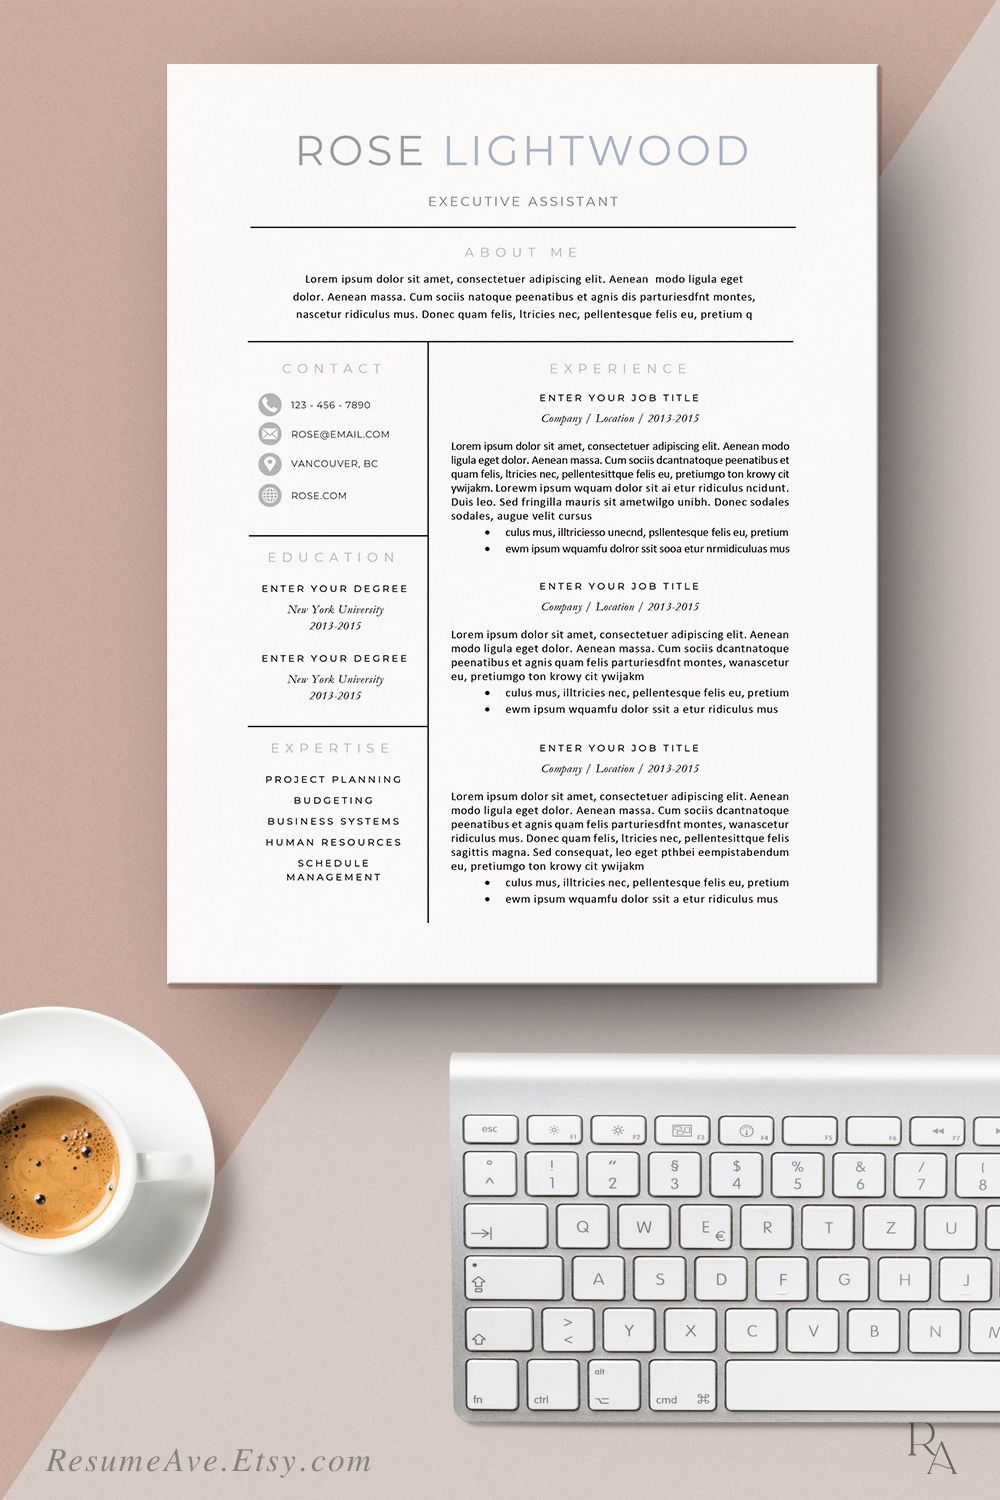 14+ How to make a resume header ideas in 2021